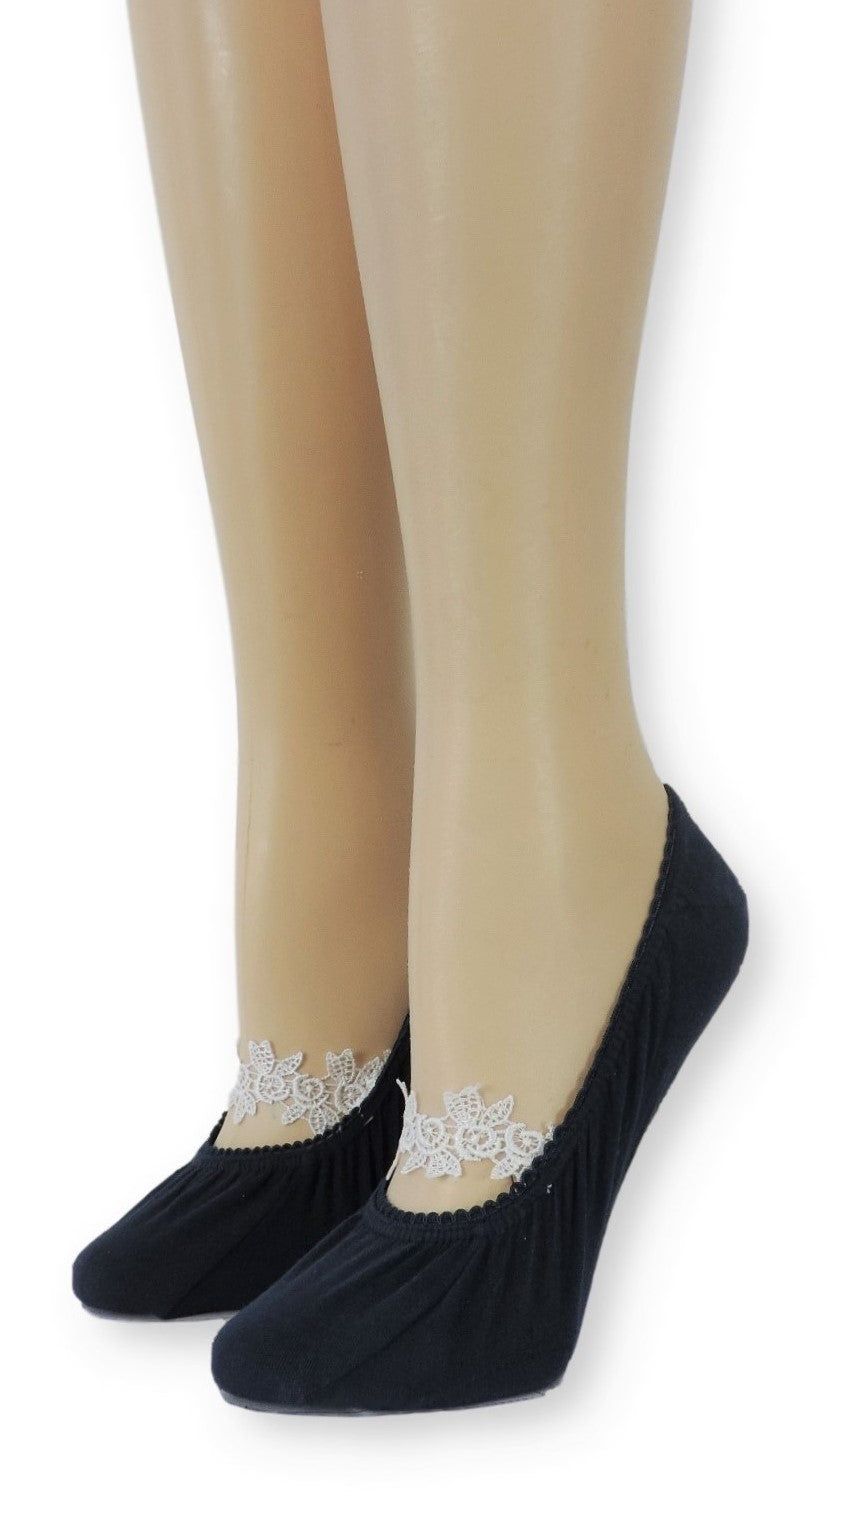 Sleek Ankle Socks with Floral white Lace - Global Trendz Fashion®